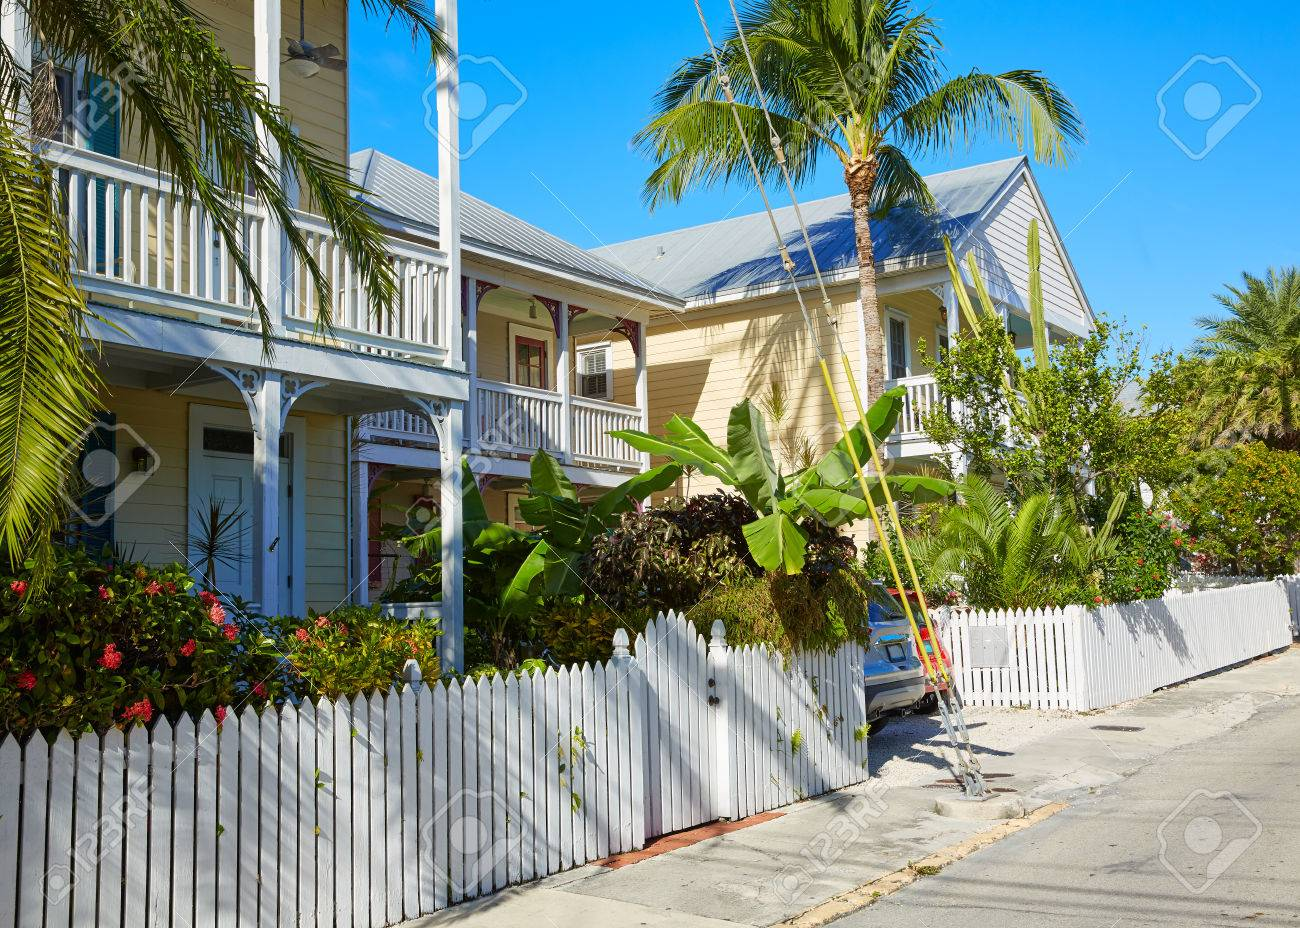 La Strada Huizen : Key west downtown street houses facades in florida usa stock photo